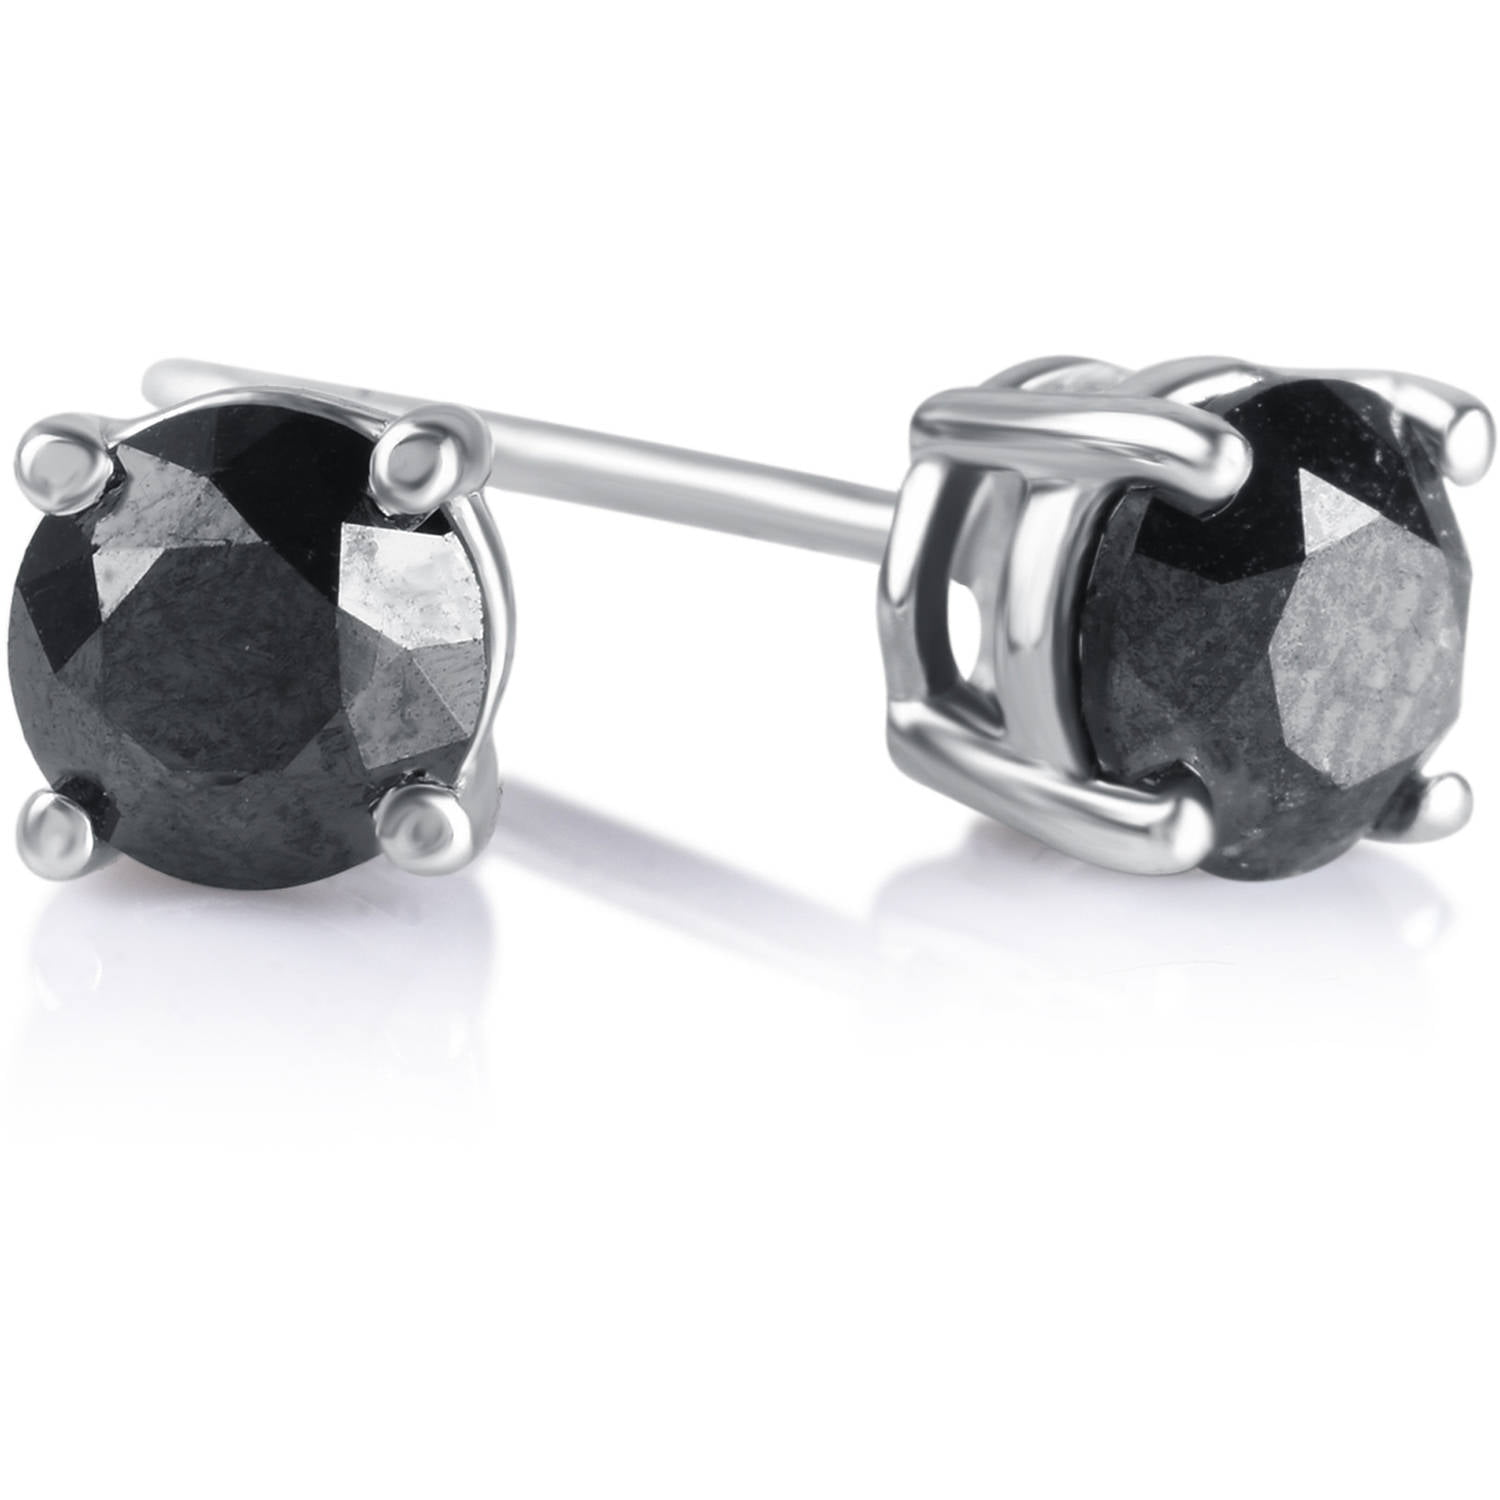 iParis 1 Carat T W Round Black Diamond Sterling Silver Stud